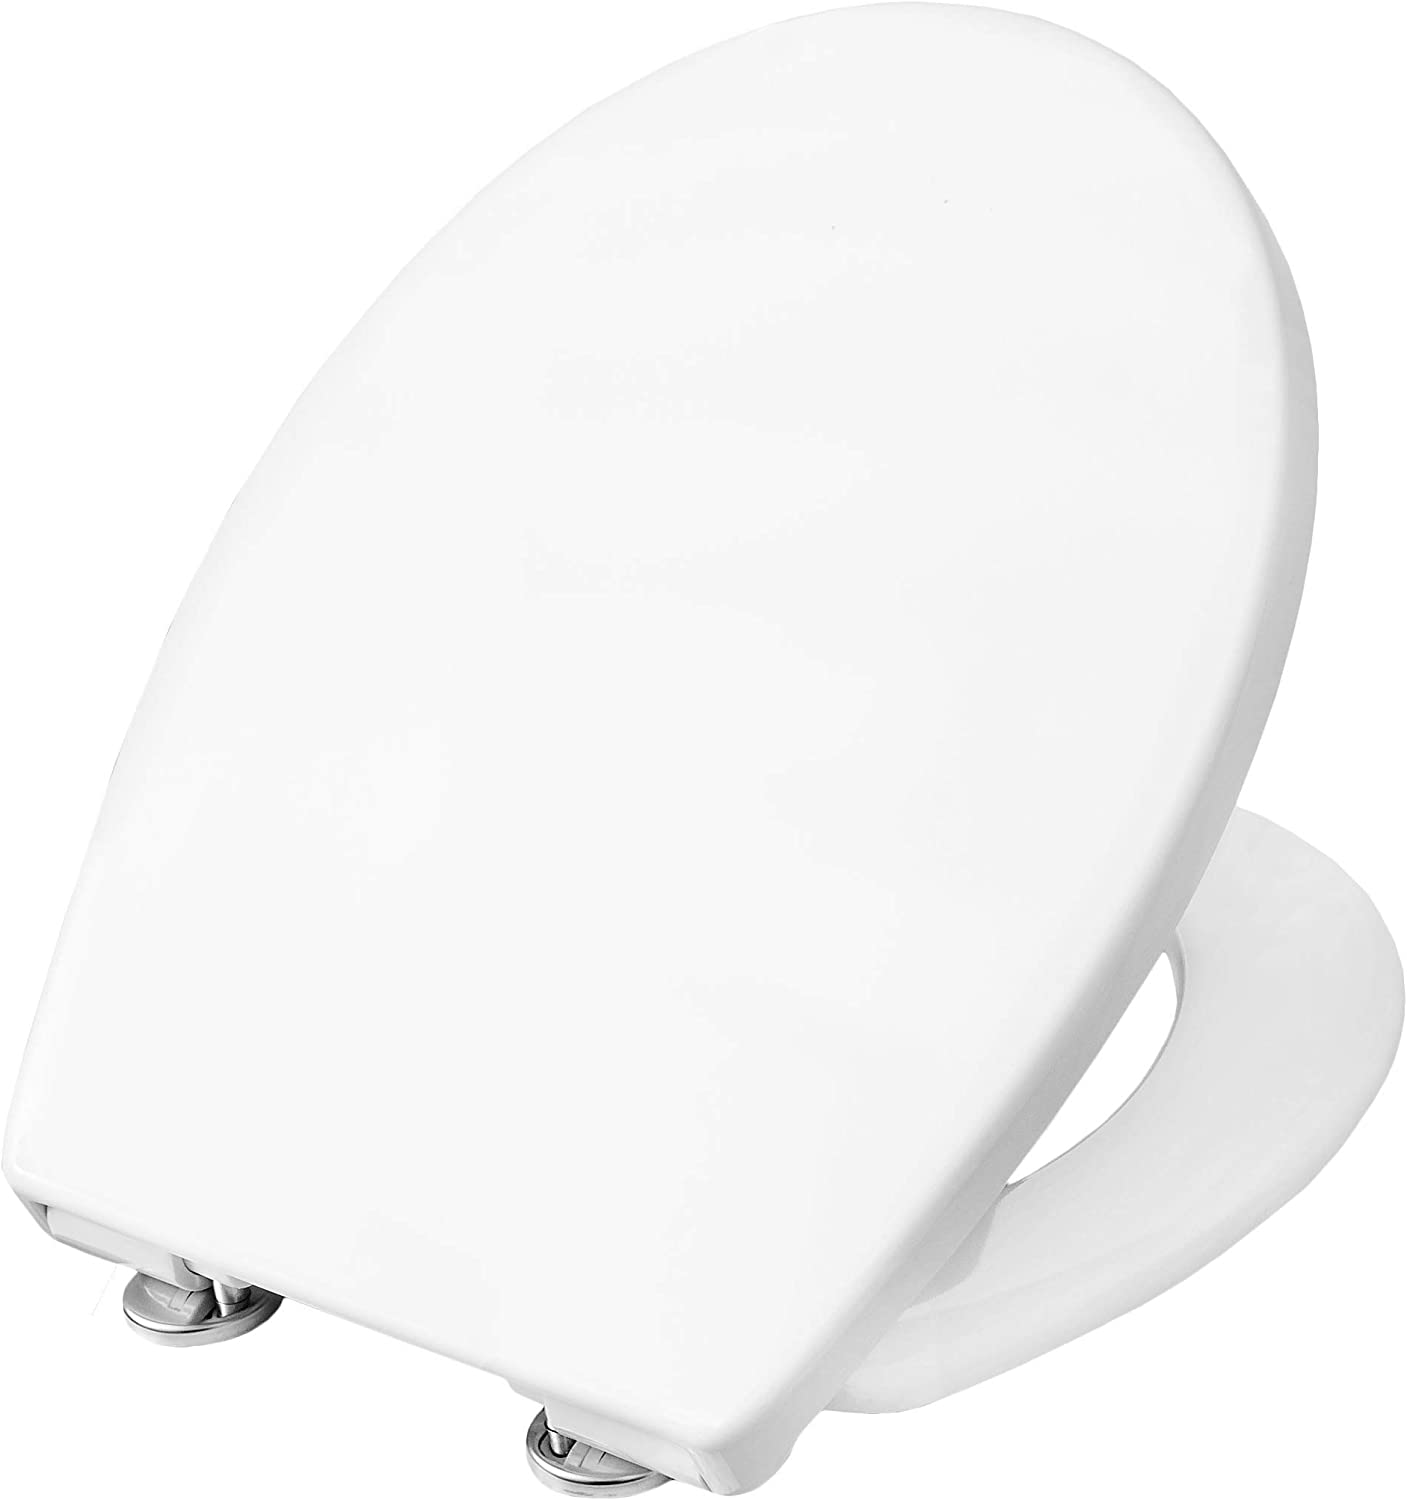 Cornat Premium 2?Toilet Seat with Slow-Close Mechanism Removable for Easy Cleaning, German Engineering [Pack of 1?KSPREMSC200